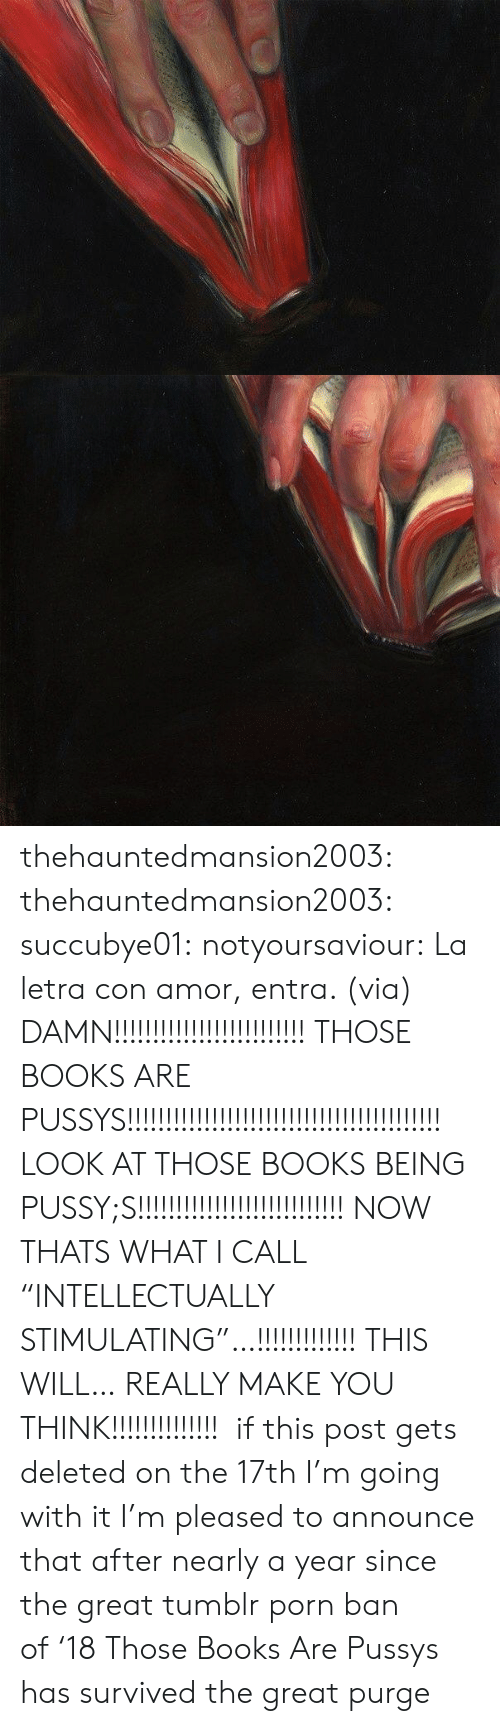 "amor: thehauntedmansion2003:  thehauntedmansion2003:  succubye01:  notyoursaviour:  La letra con amor, entra. (via)  DAMN!!!!!!!!!!!!!!!!!!!!!!!!! THOSE BOOKS ARE PUSSYS!!!!!!!!!!!!!!!!!!!!!!!!!!!!!!!!!!!!!!!!! LOOK AT THOSE BOOKS BEING PUSSY;S!!!!!!!!!!!!!!!!!!!!!!!!!!! NOW THATS WHAT I CALL ""INTELLECTUALLY STIMULATING""…!!!!!!!!!!!!! THIS WILL… REALLY MAKE YOU THINK!!!!!!!!!!!!!!   if this post gets deleted on the 17th I'm going with it  I'm pleased to announce that after nearly a year since the great tumblr porn ban of '18 Those Books Are Pussys has survived the great purge"